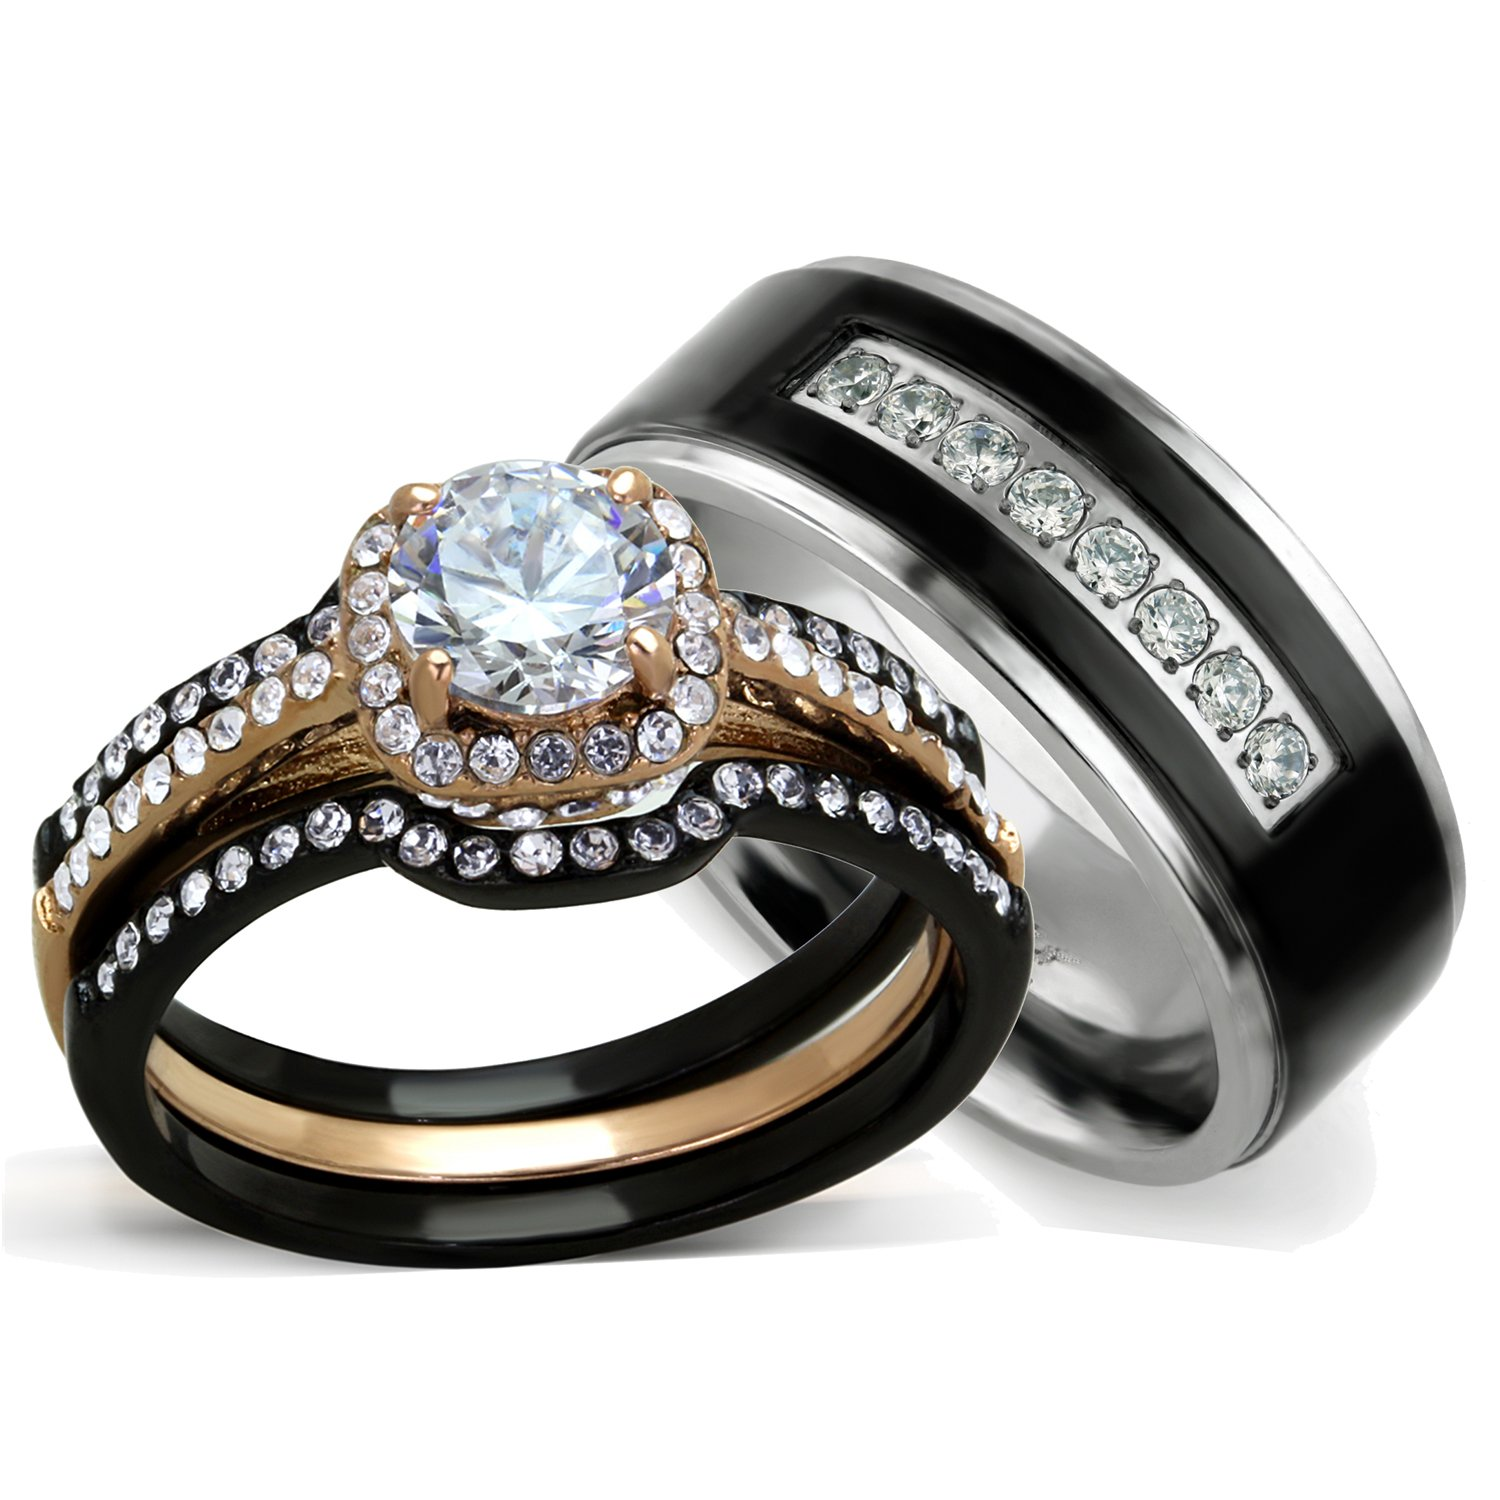 Amazoncom His and Hers Wedding Ring Sets Womens Halo Design CZ